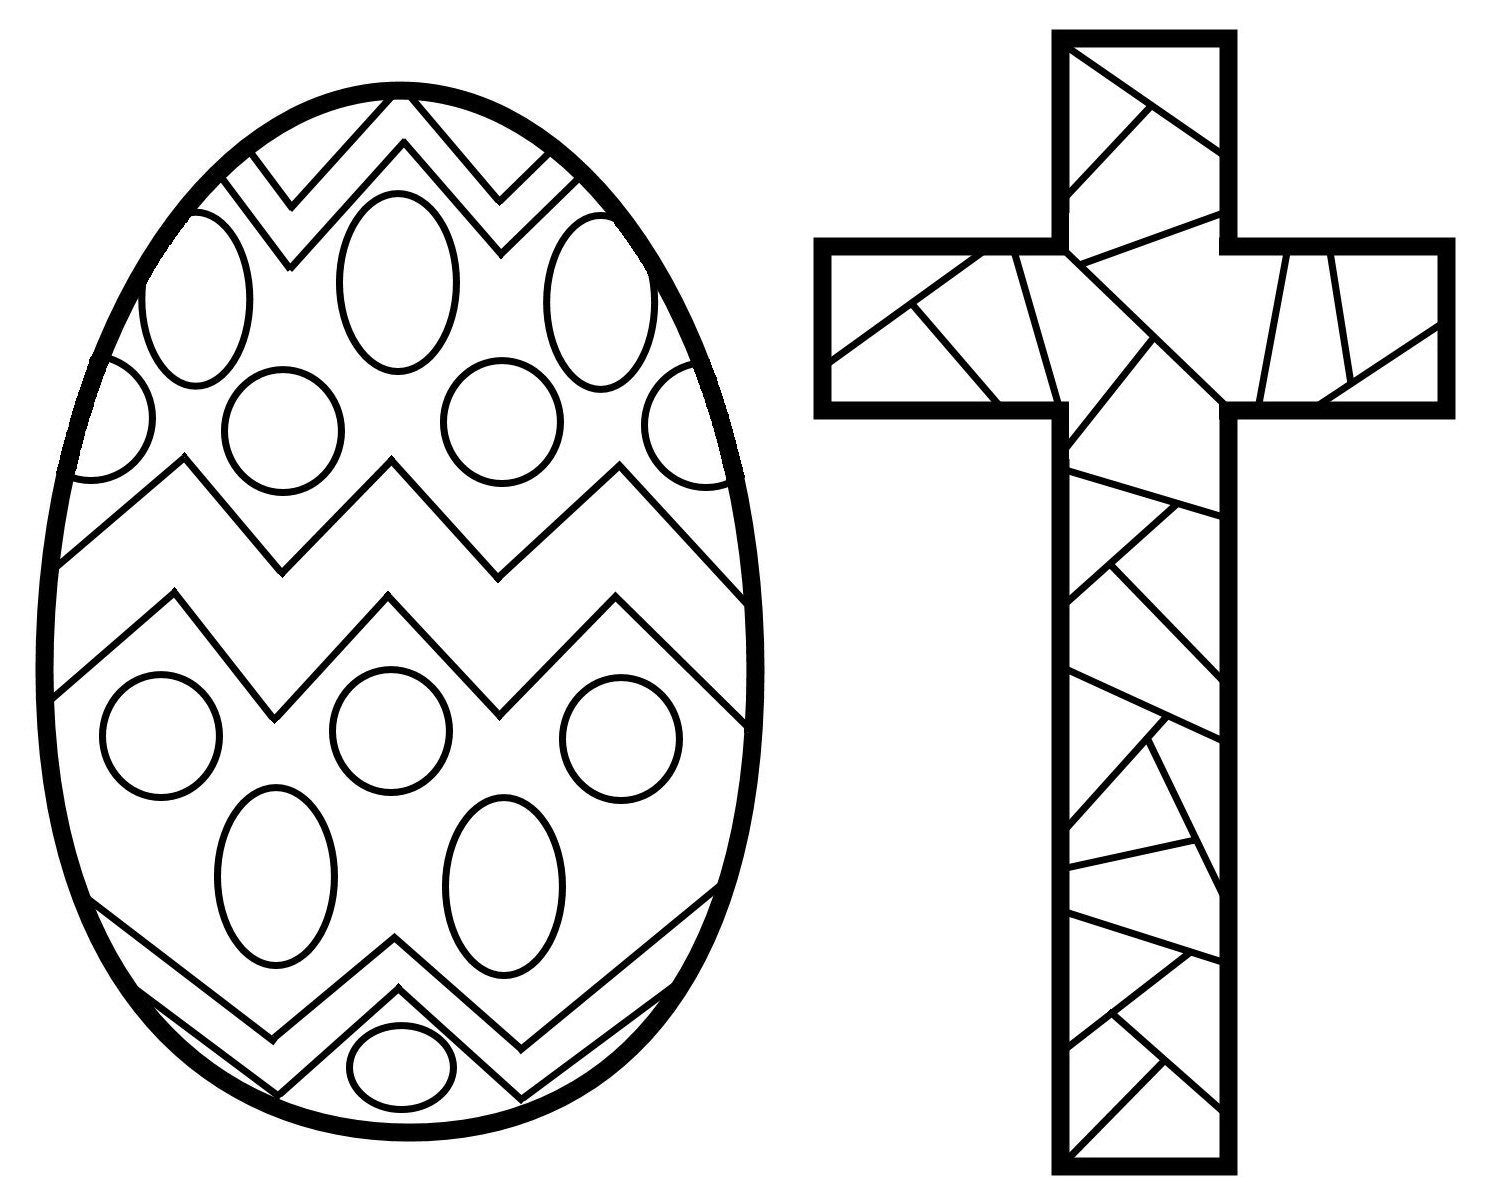 Easter Cross Coloring Pages Printable for Fancy Draw Print to Print Of Easter Basket Coloring Pages to Print Gallery